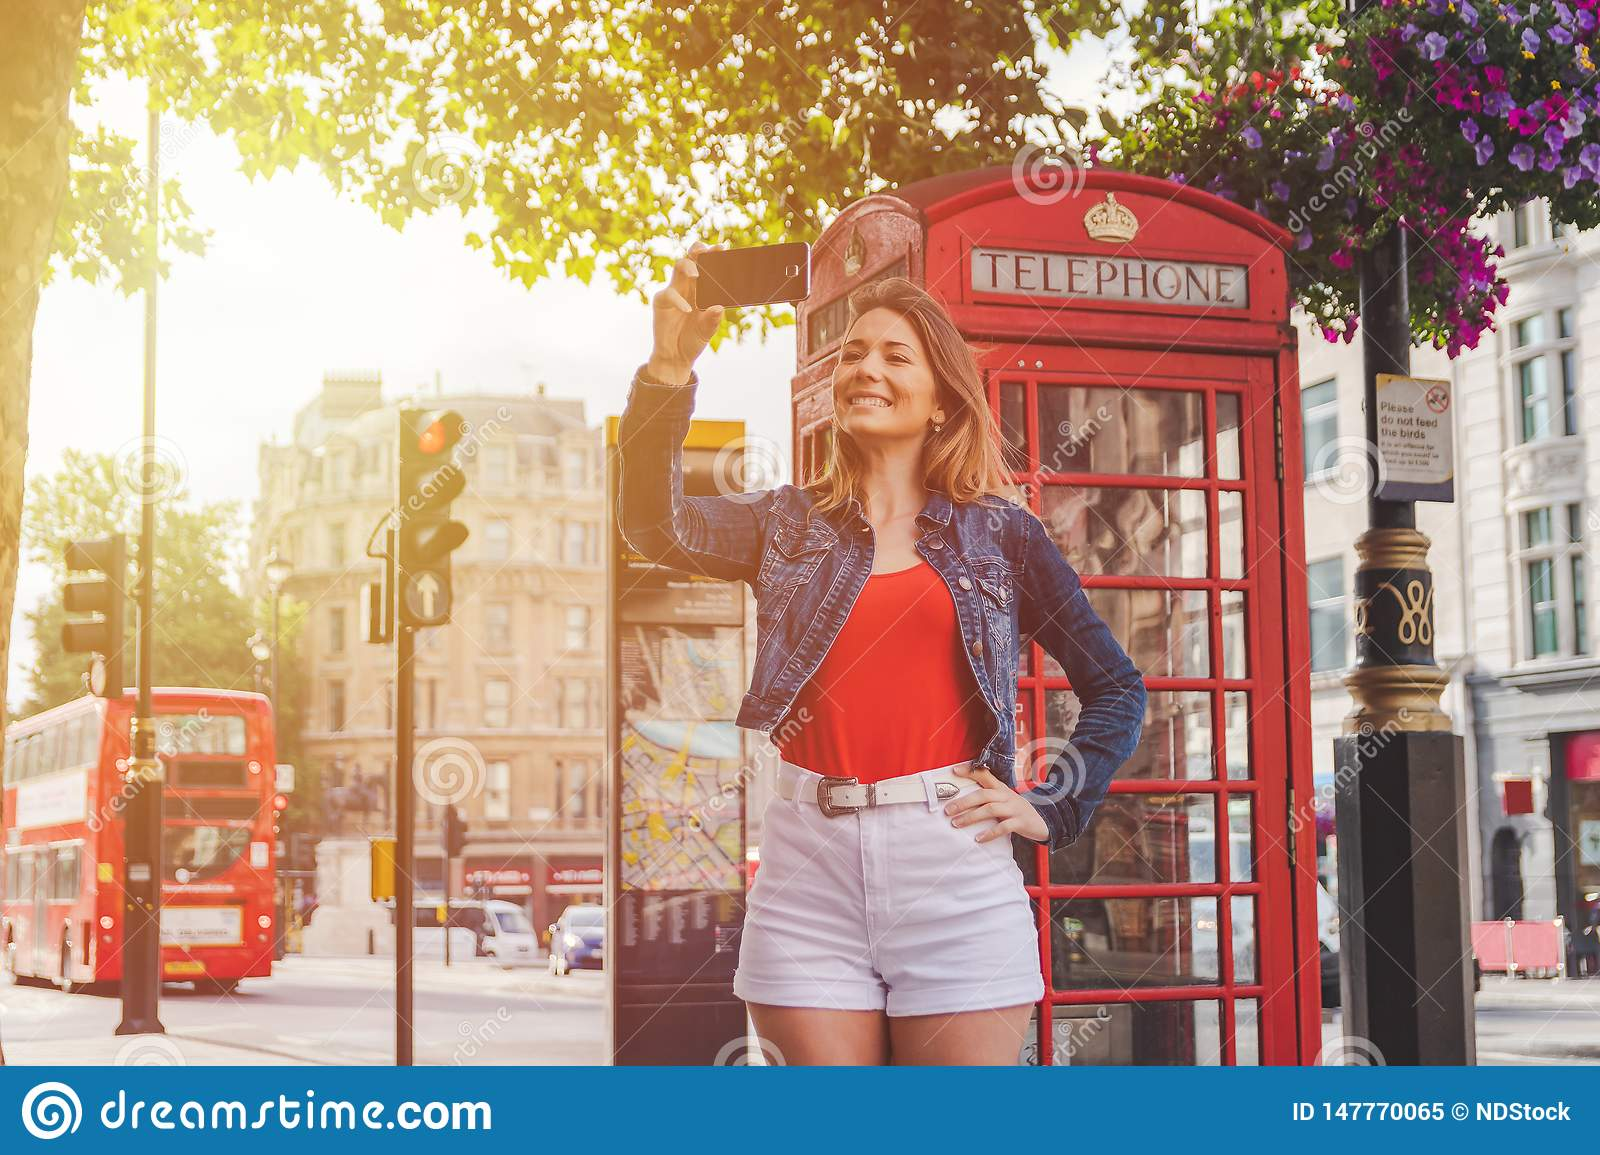 Happy young girl taking a selfie in front of a phone box and a red bus in London